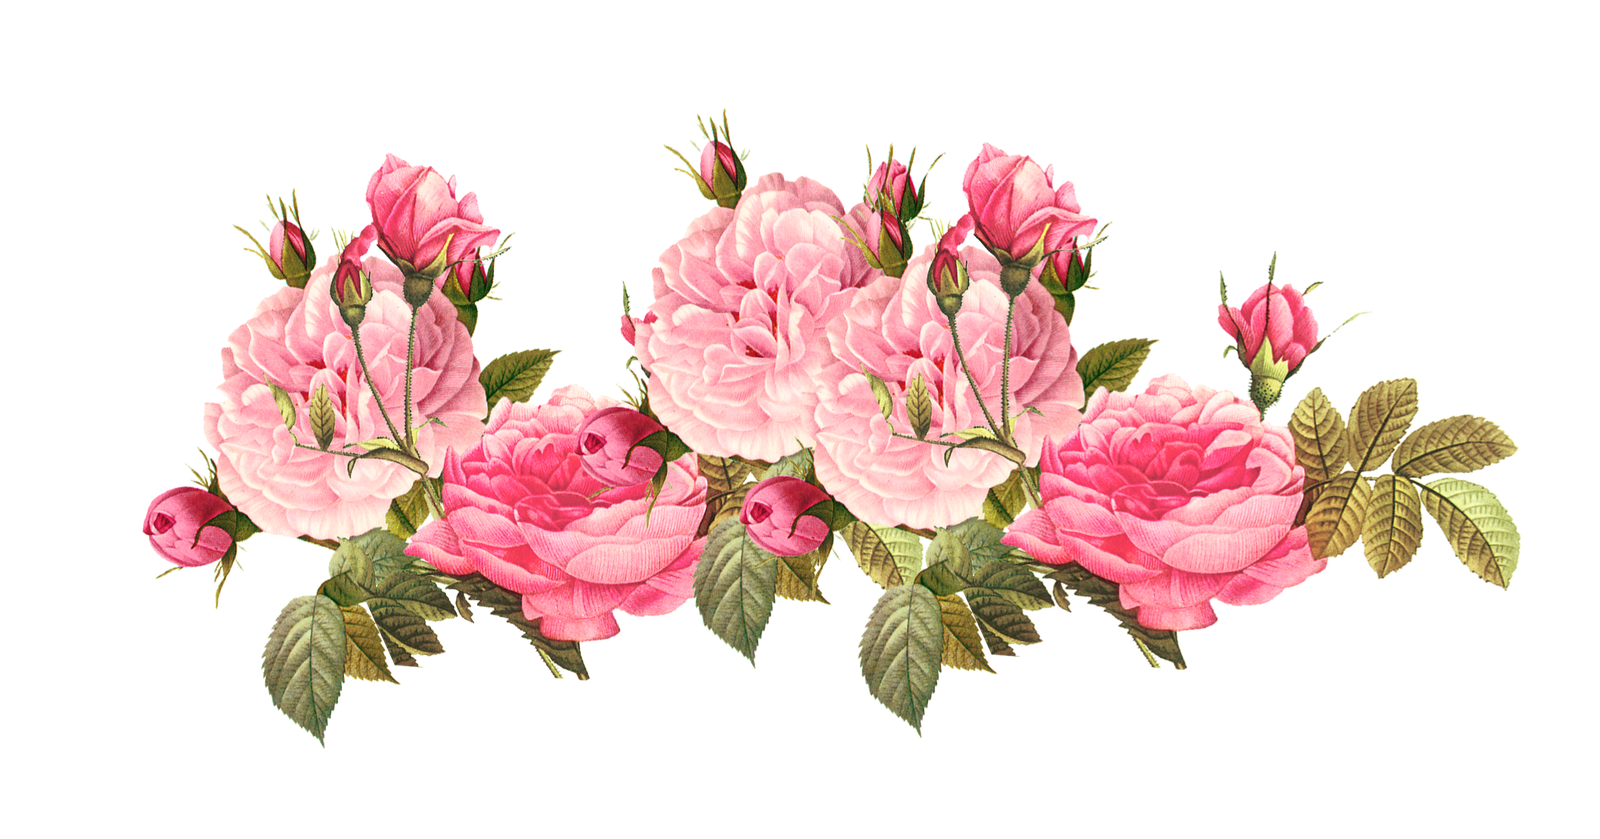 Poppy clipart vintage. Pink free rose borders